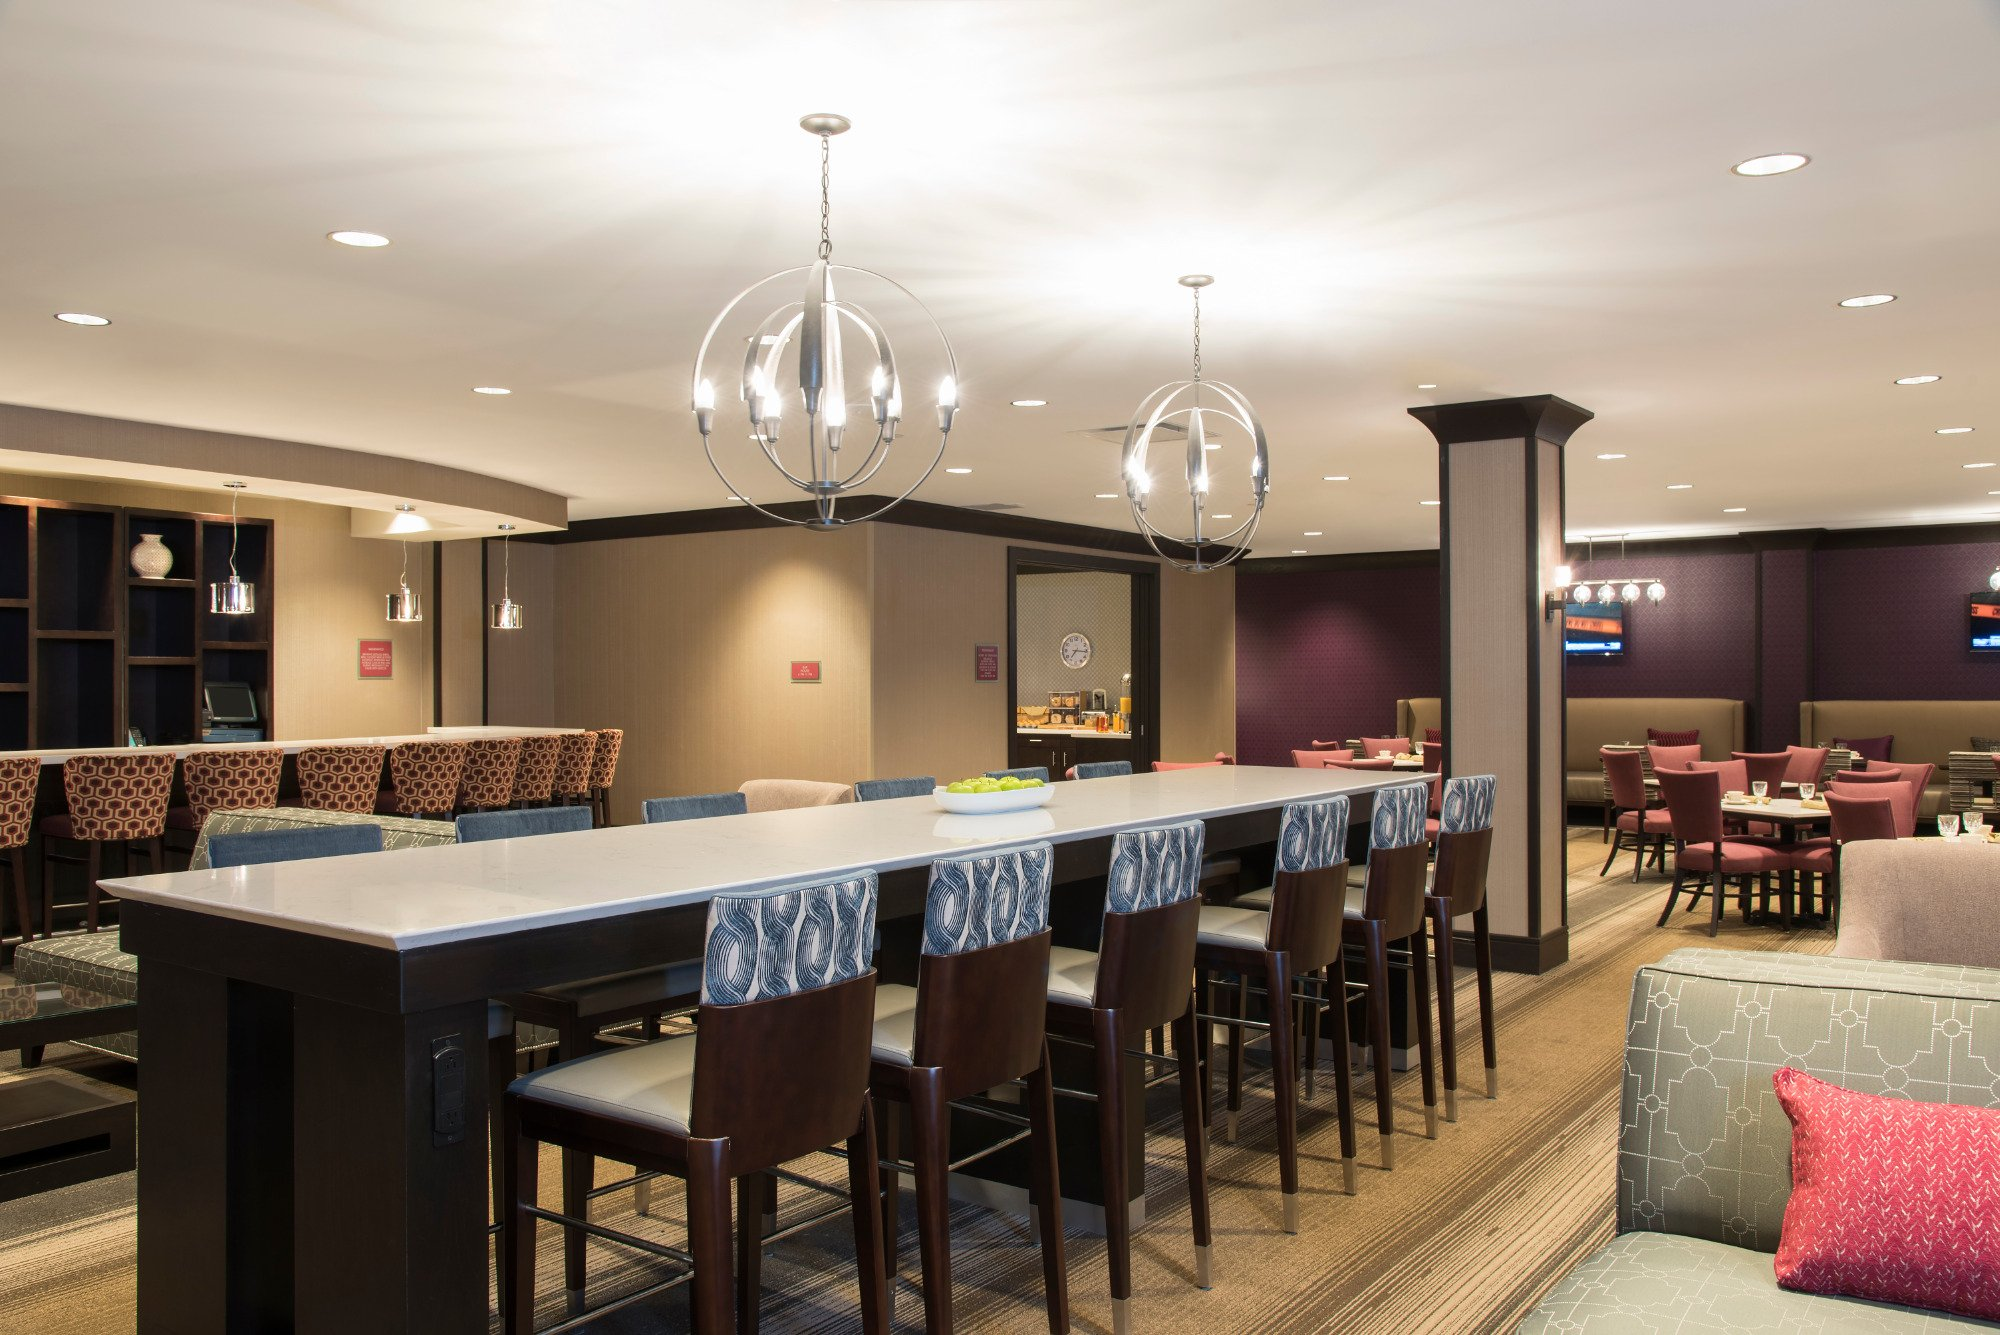 Doubletree by hilton schenectady ny 2018 hotel review for 100 nott terrace schenectady ny